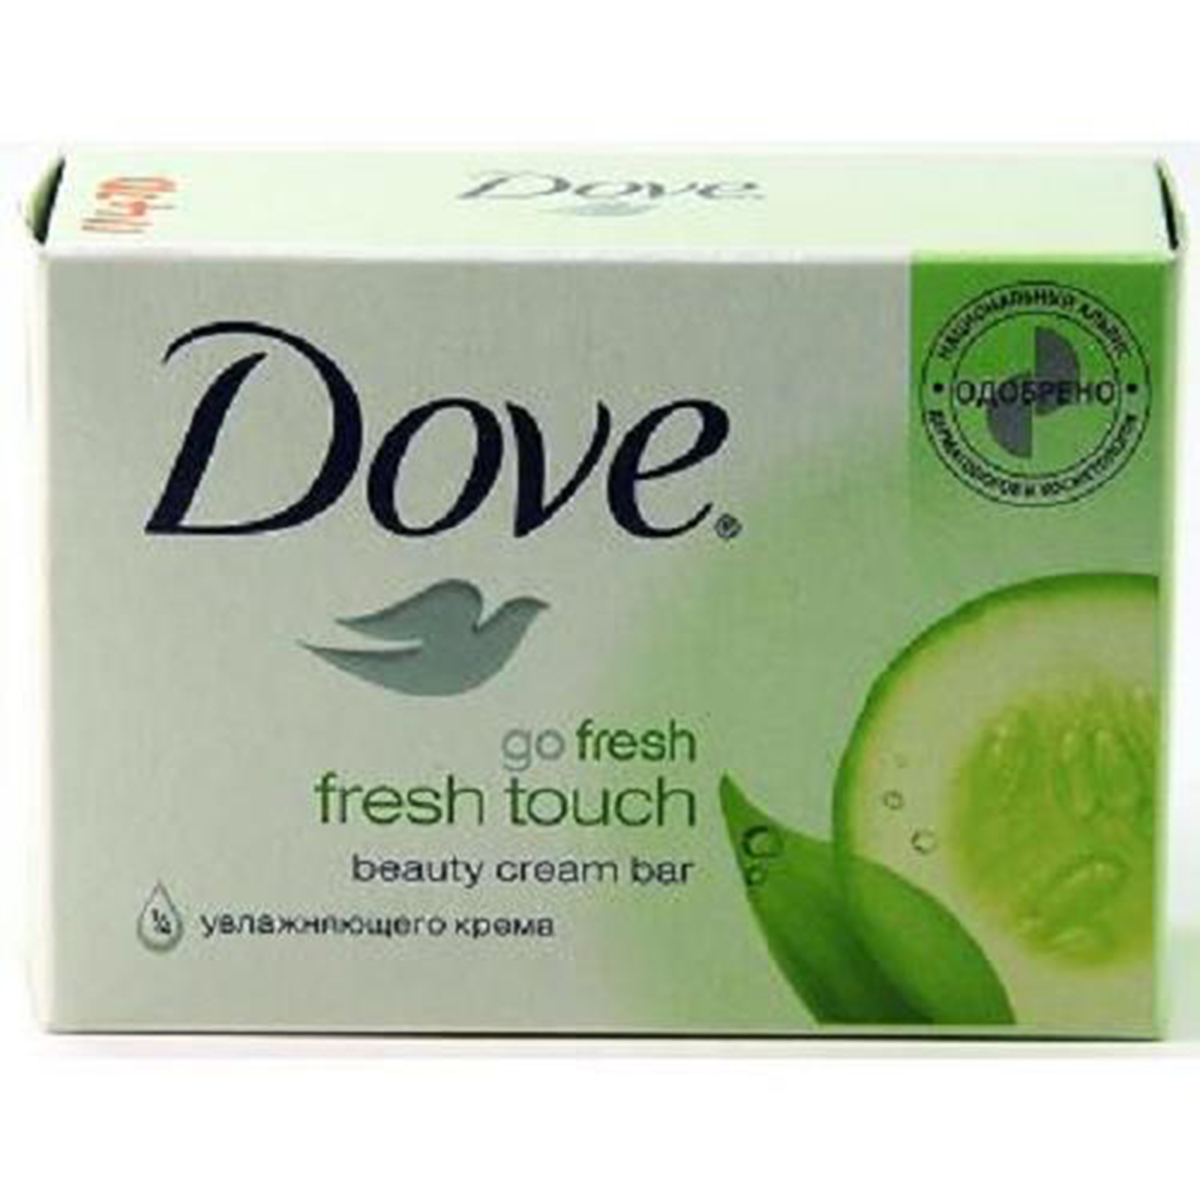 Product Of Dove, Beauty Cream Bar - Green Fresh Touch, Count 1 - Soap/Body Wash/Shaving Creams / Grab Varieties & Flavors